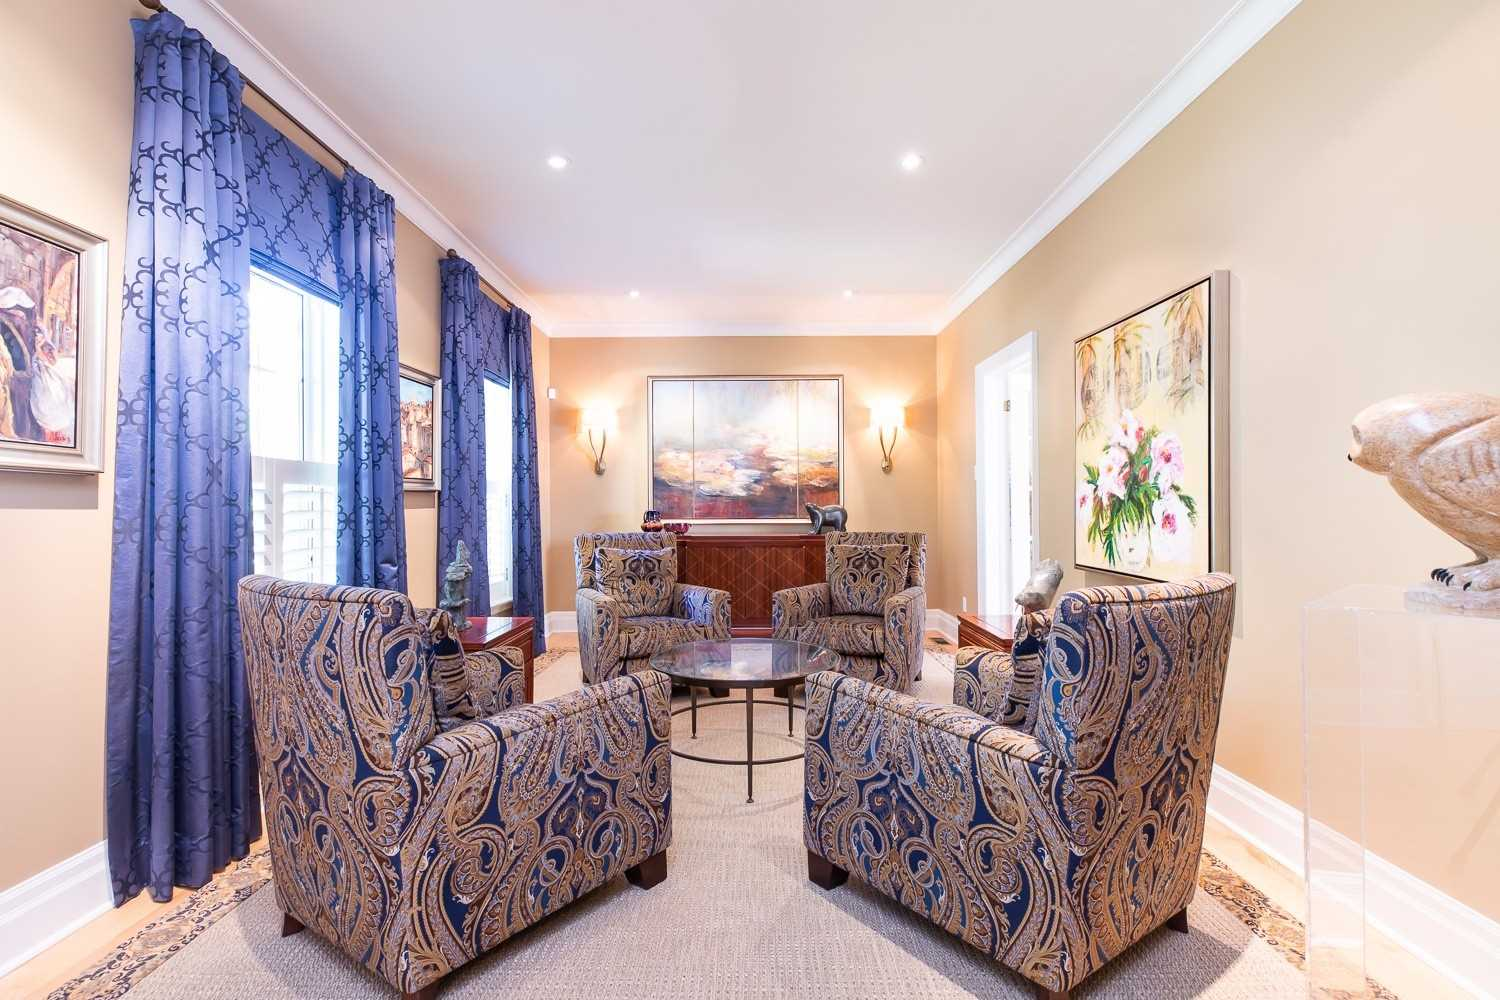 706 Meadow Wood Rd, Mississauga, Ontario L5J2S6, 4 Bedrooms Bedrooms, 11 Rooms Rooms,3 BathroomsBathrooms,Detached,For Sale,Meadow Wood,W5361835